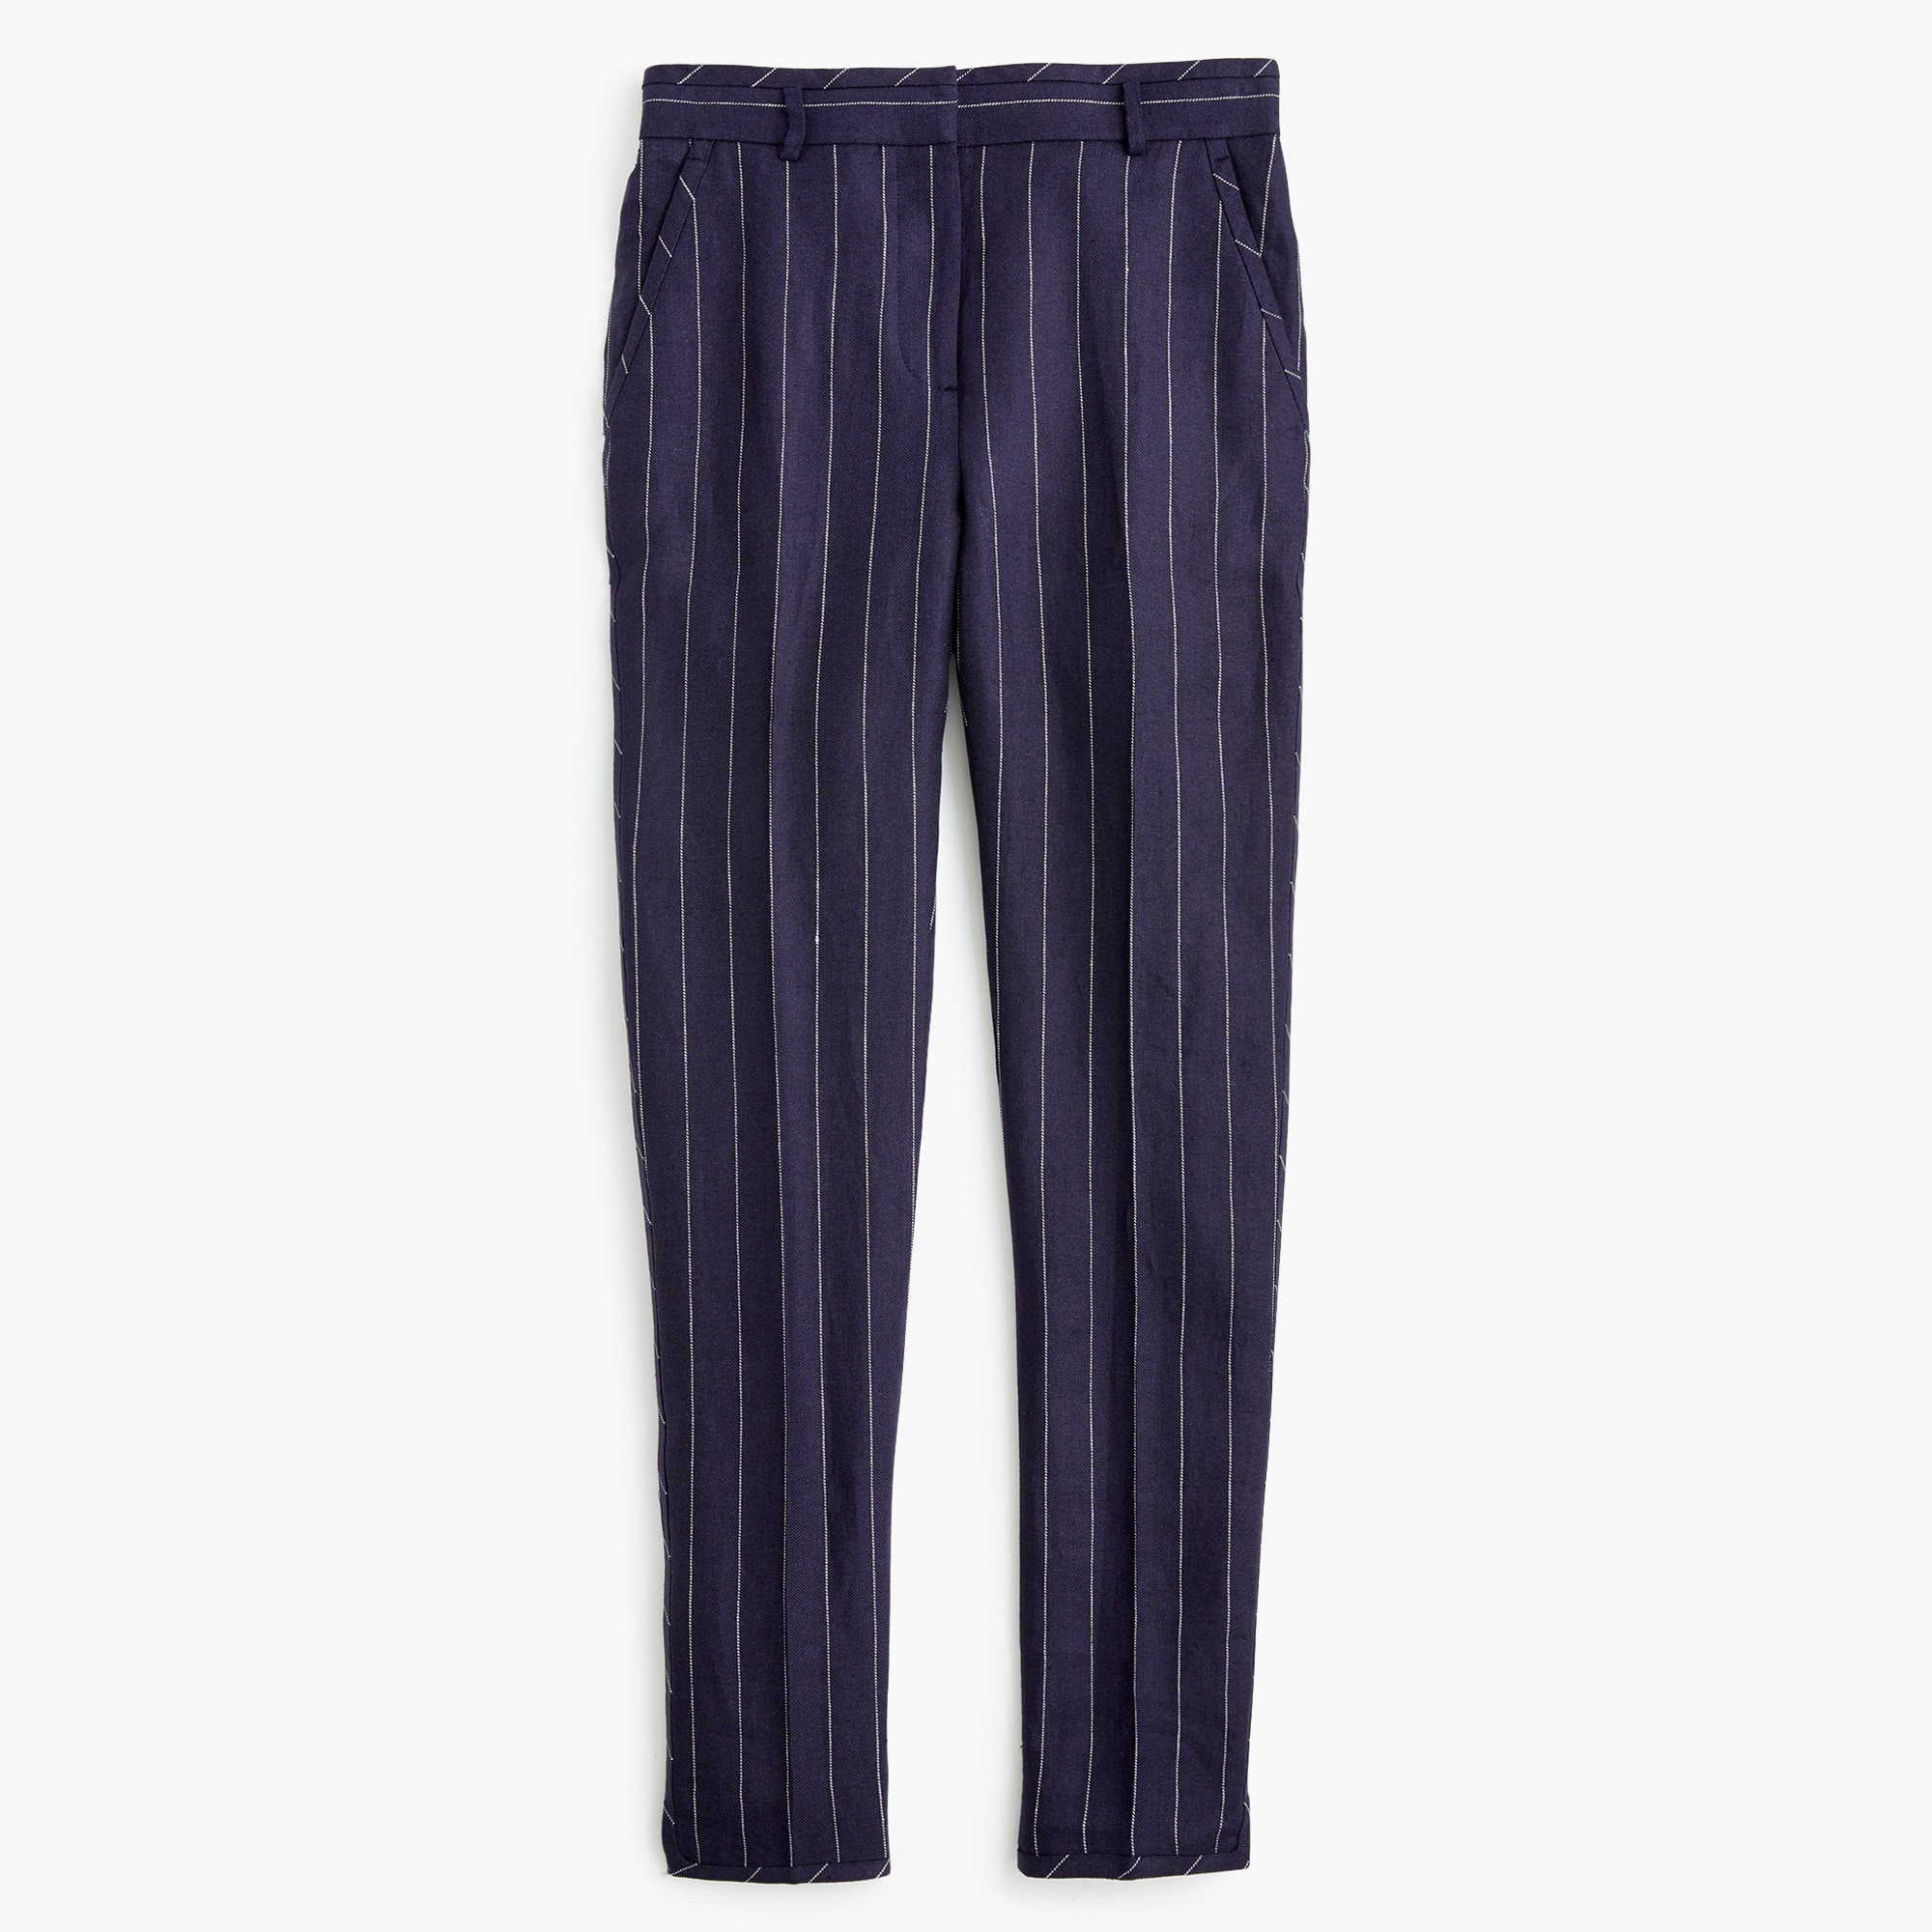 Image 2 for Tall easy pant in pinstriped linen